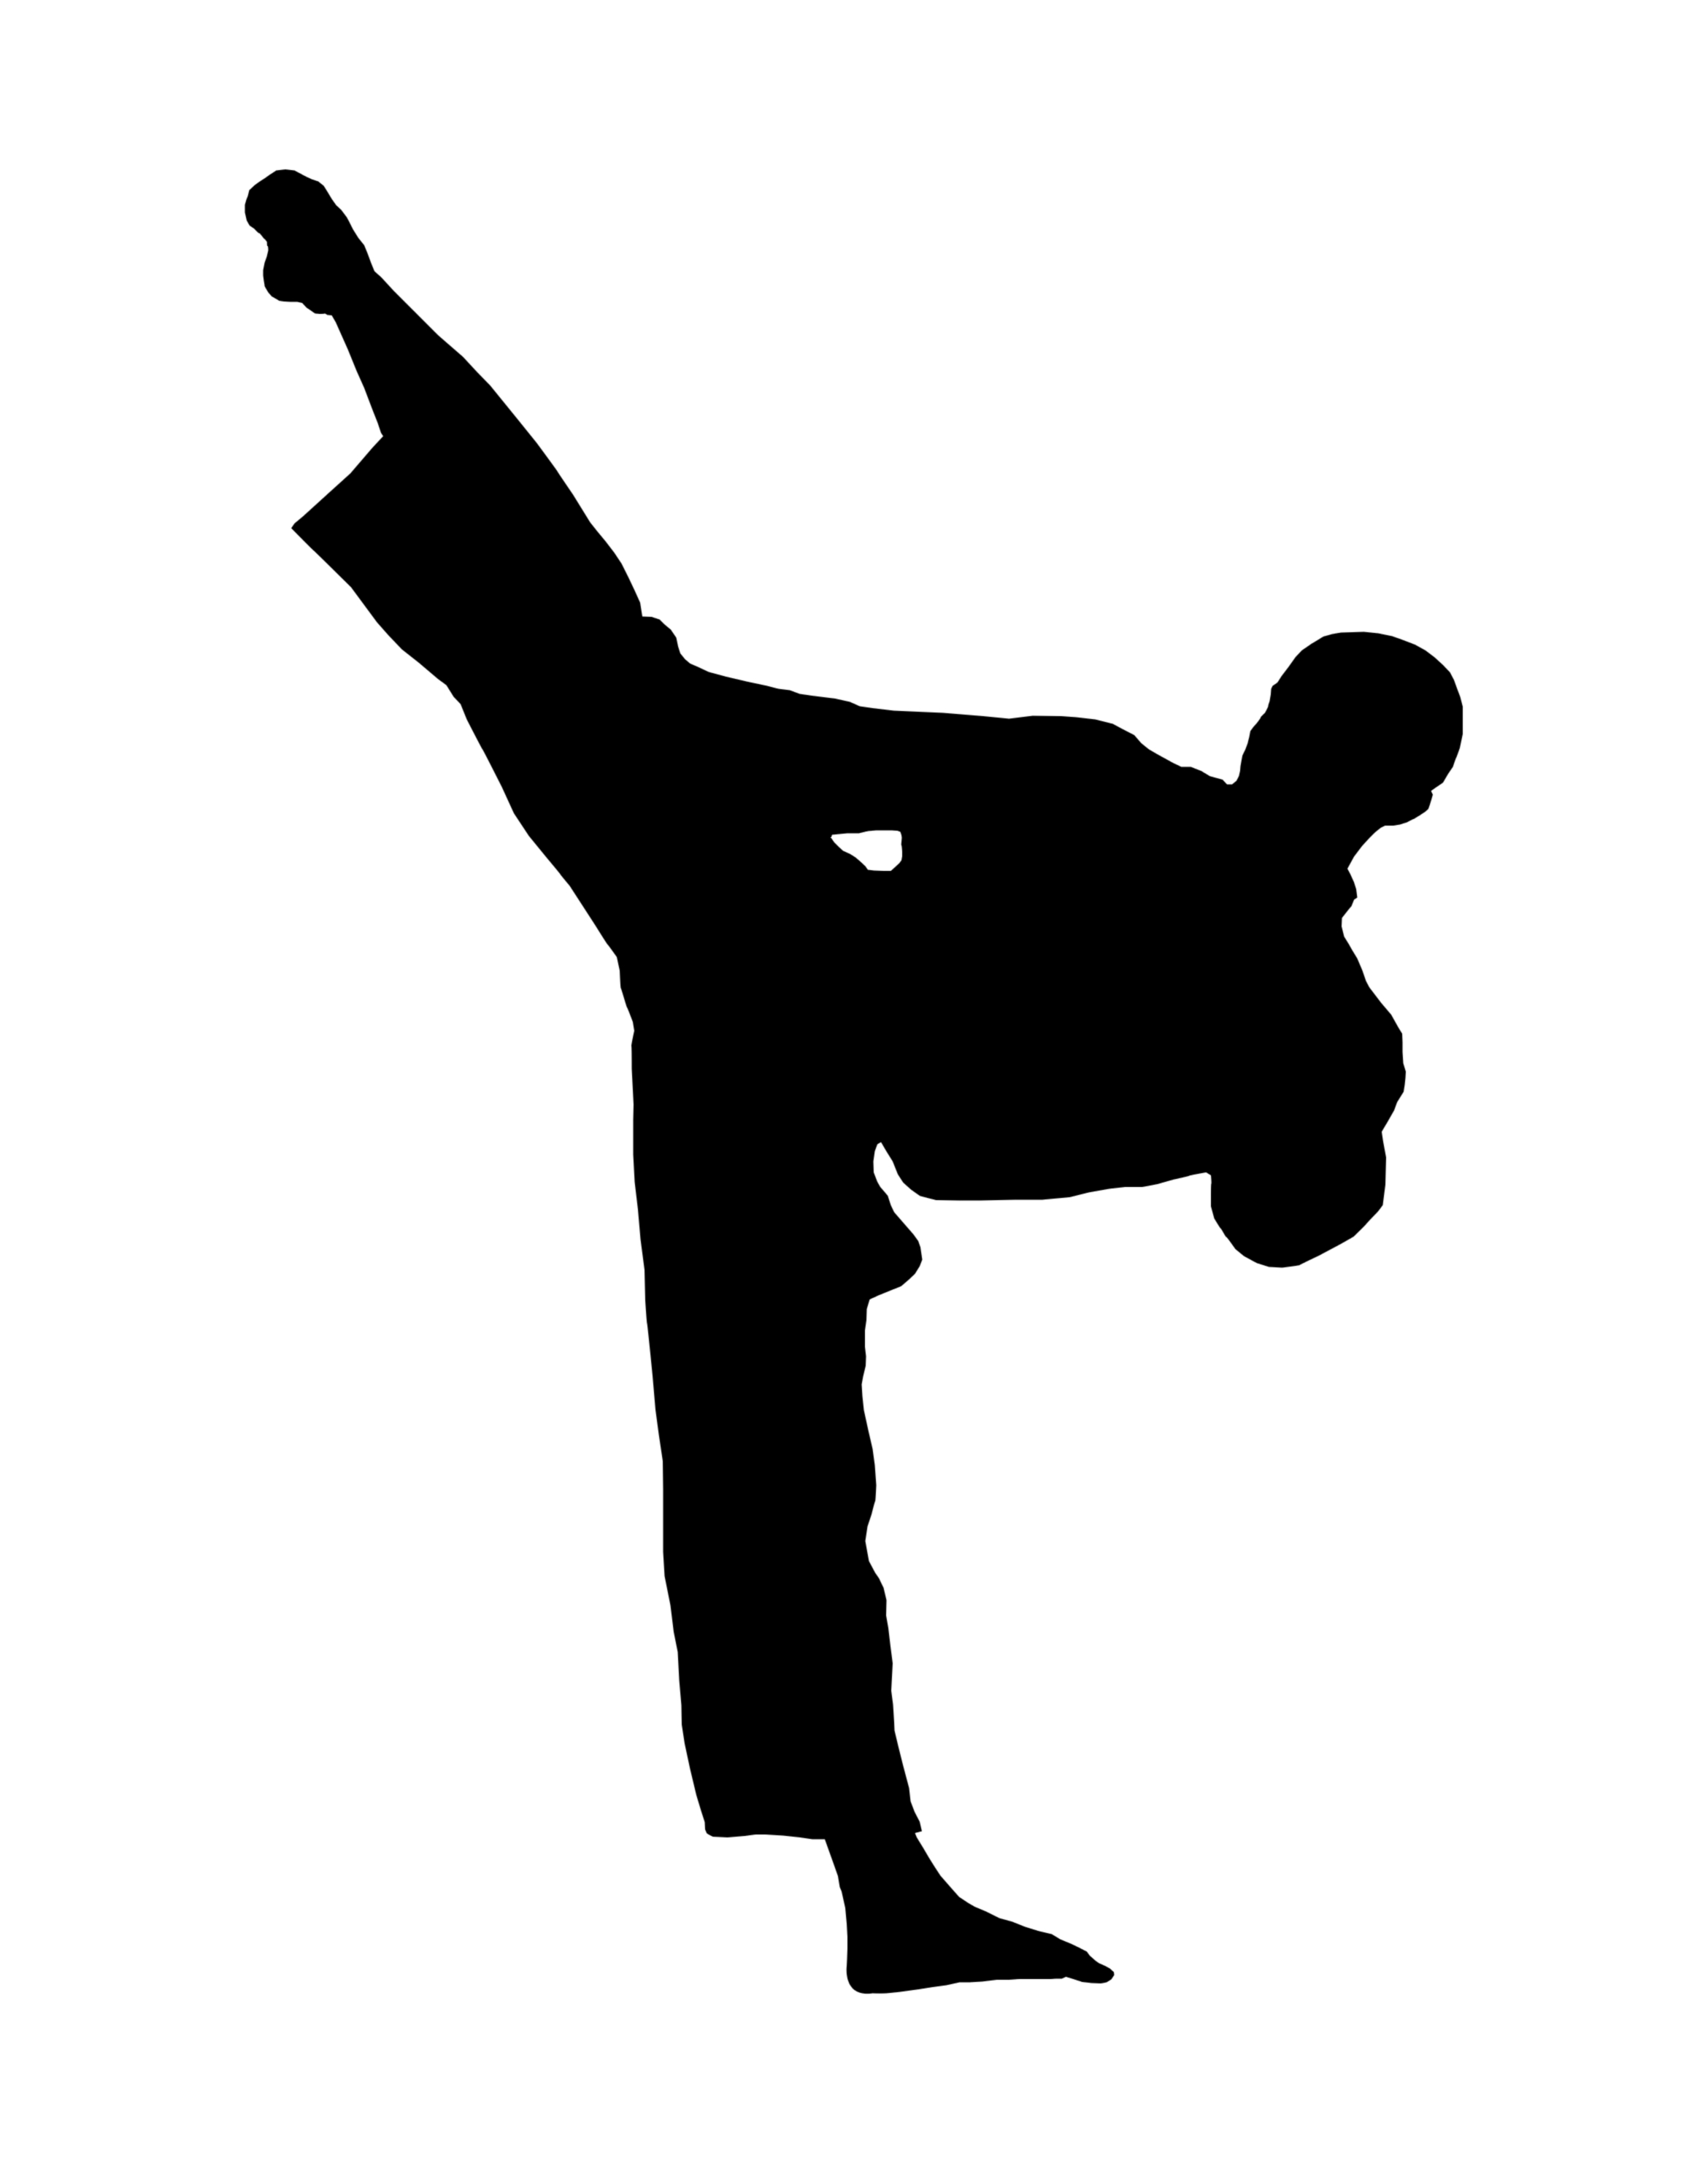 Karate Kick Clipart | Clipart Panda - Free Clipart Images